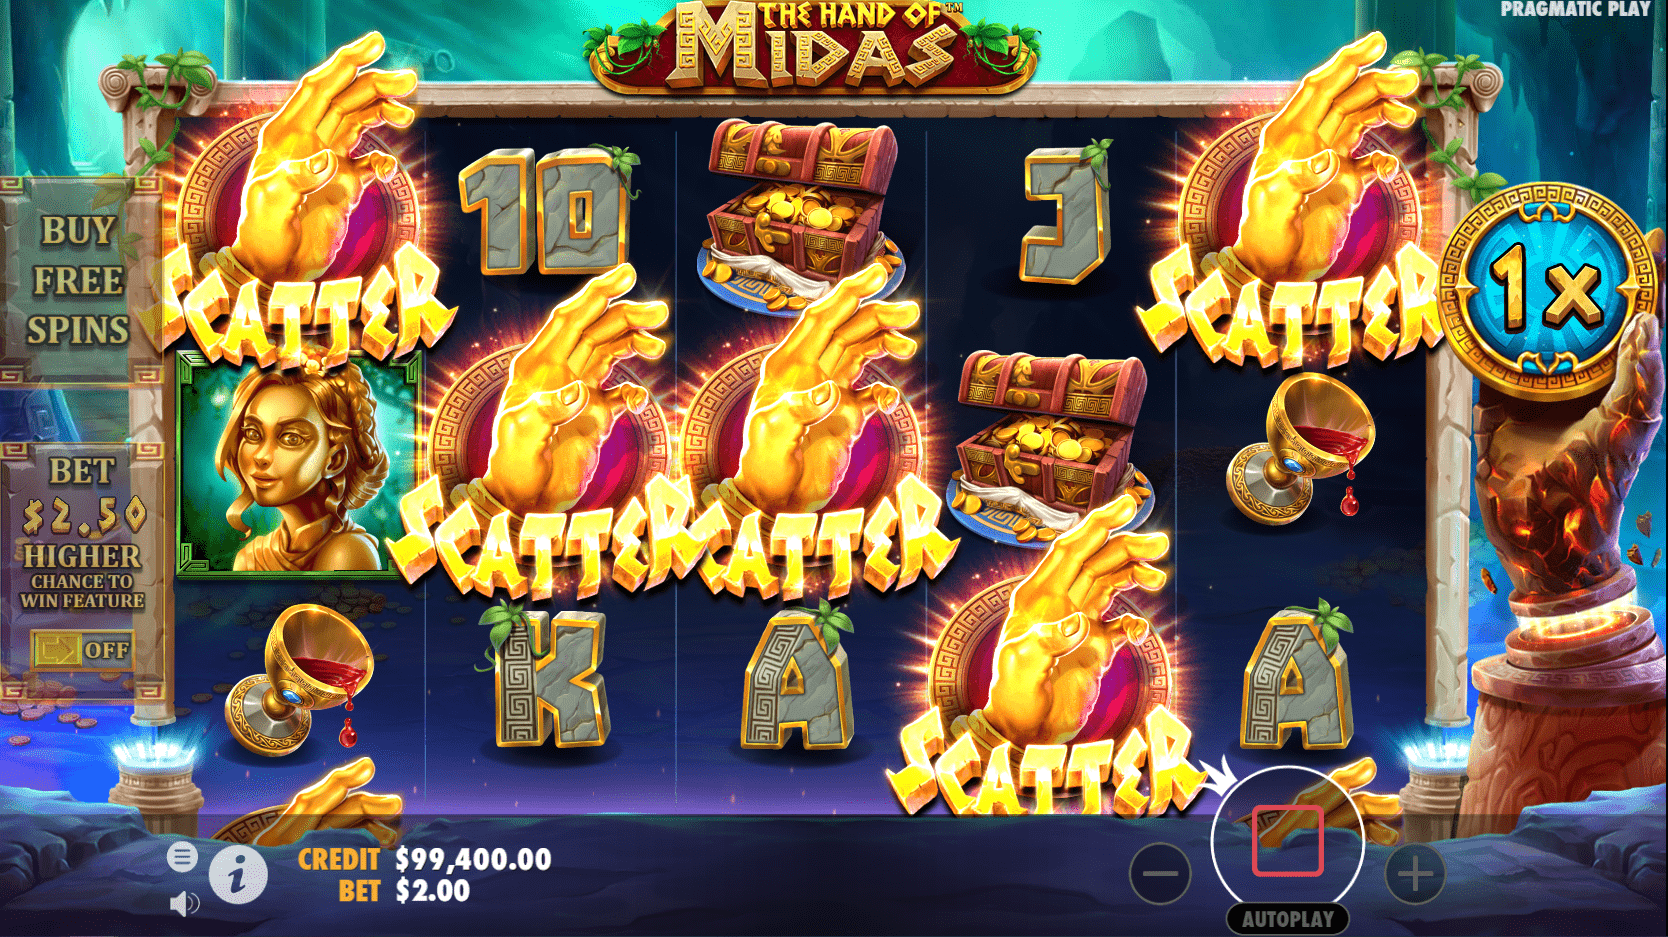 The Hand of Midas Video Slot Game Five Scatters